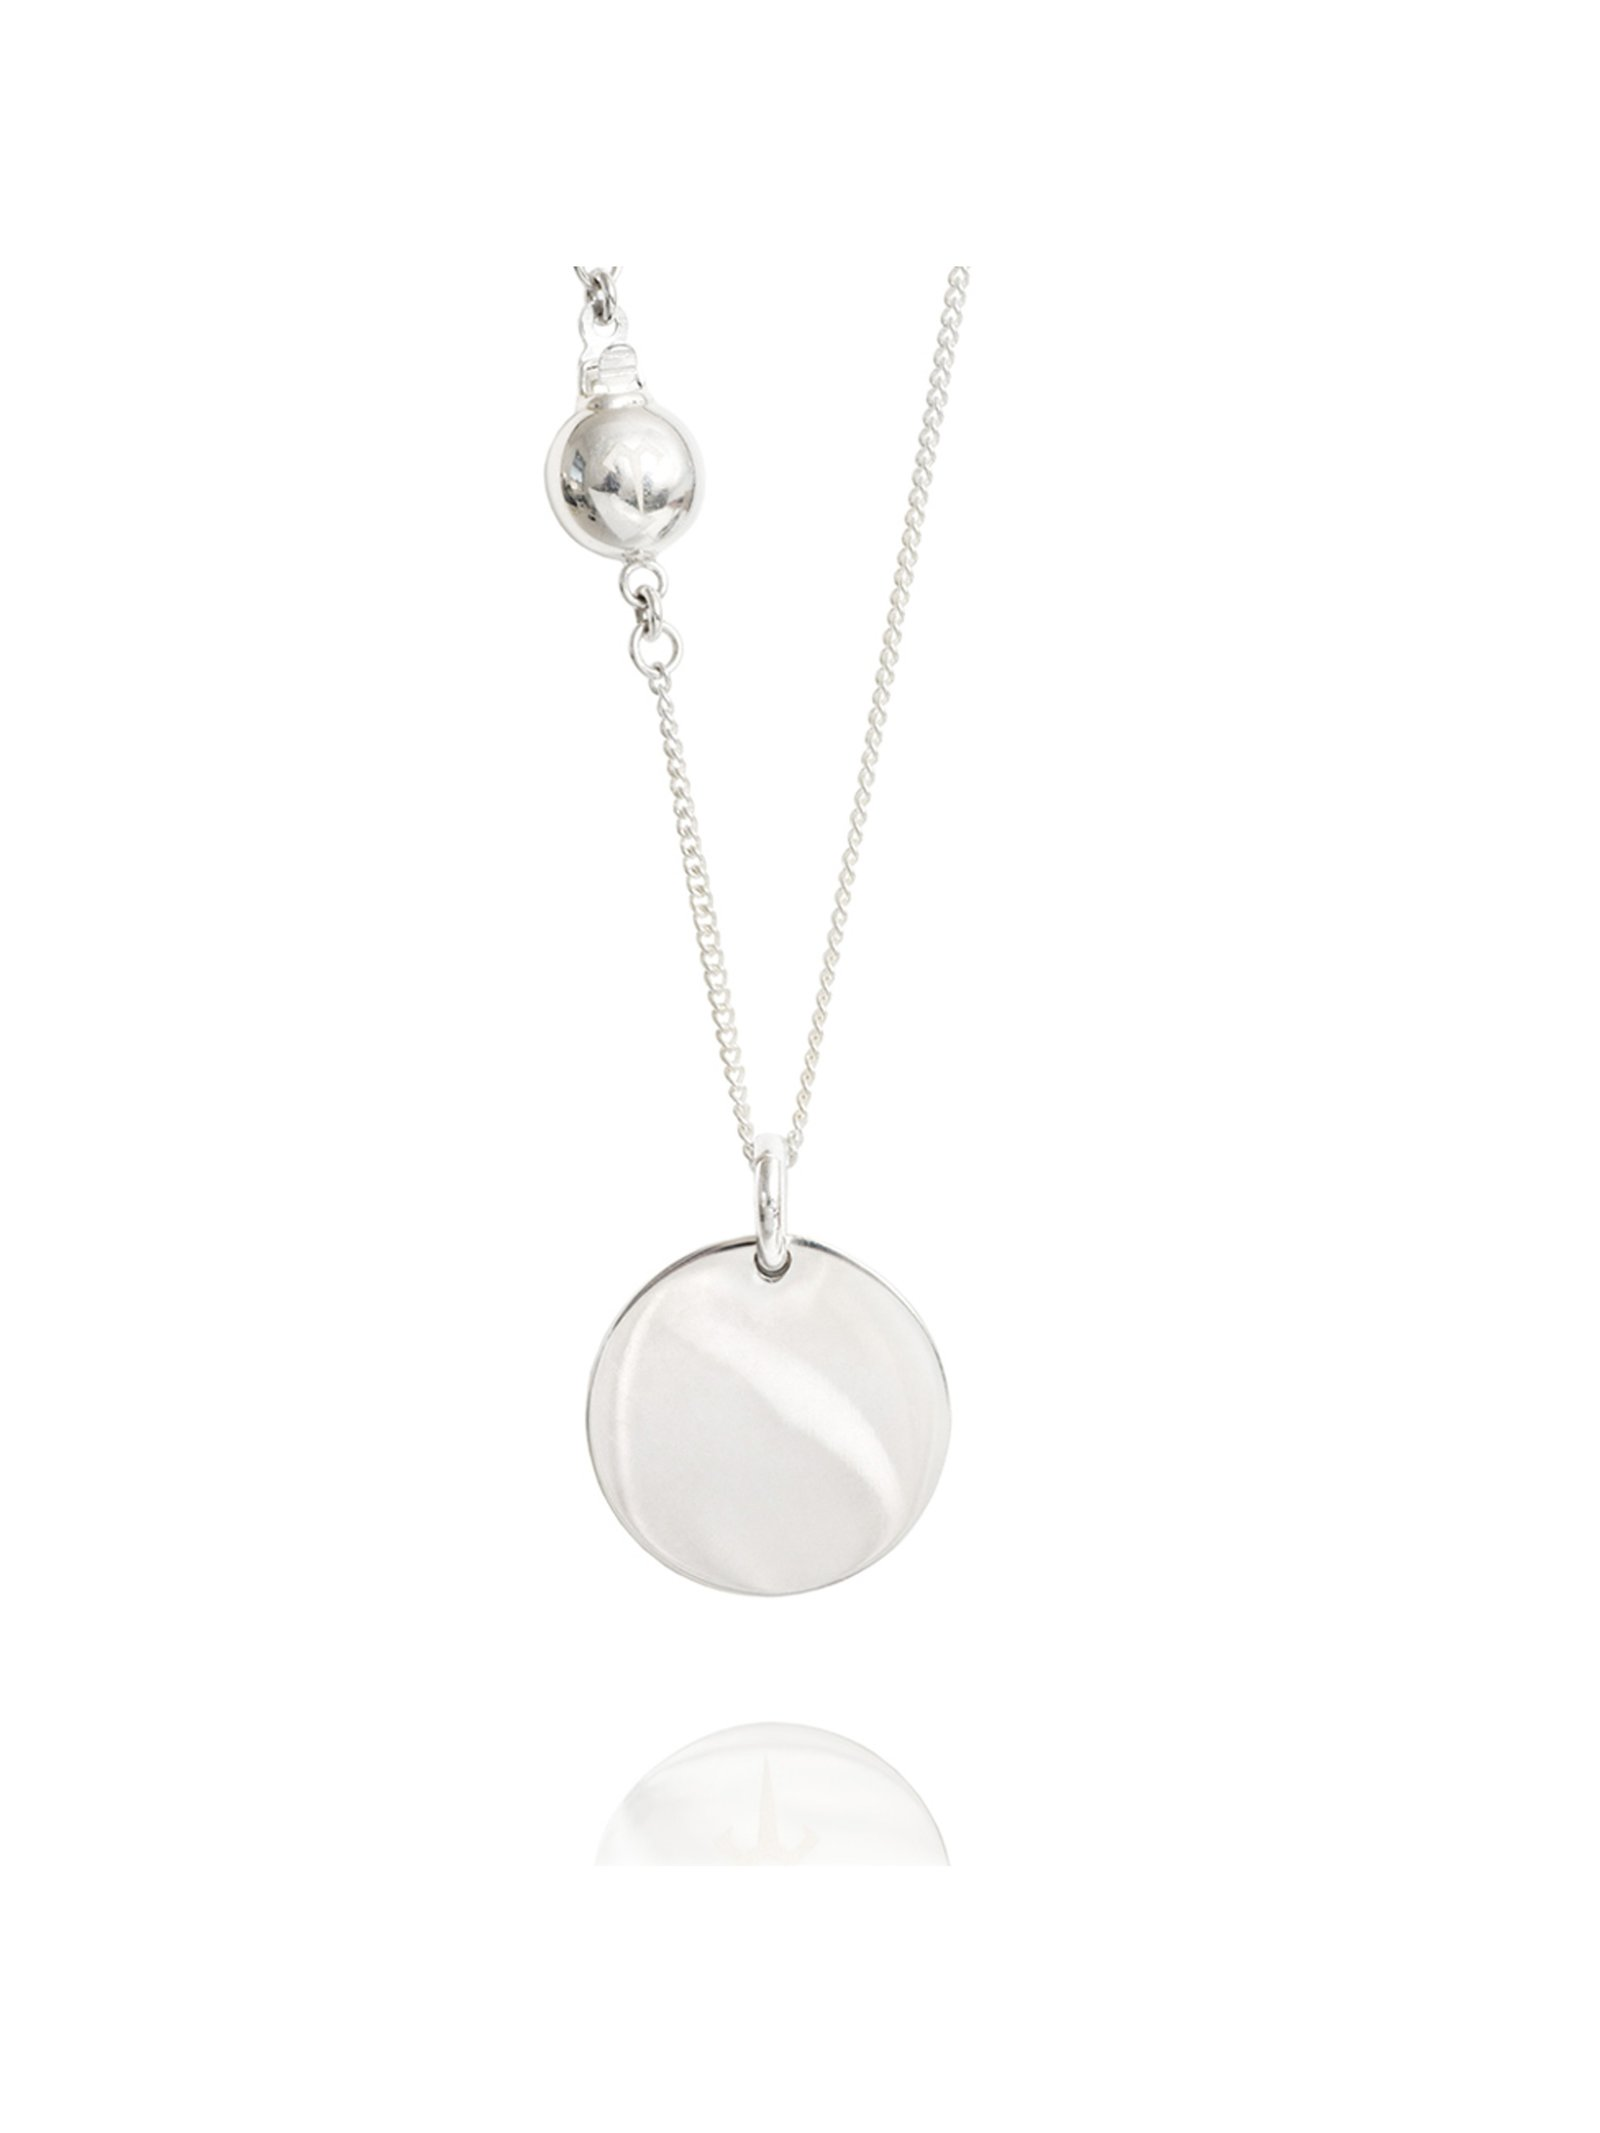 Ternary London MEDIUM COIN PENDANT NECKLACE SILVER